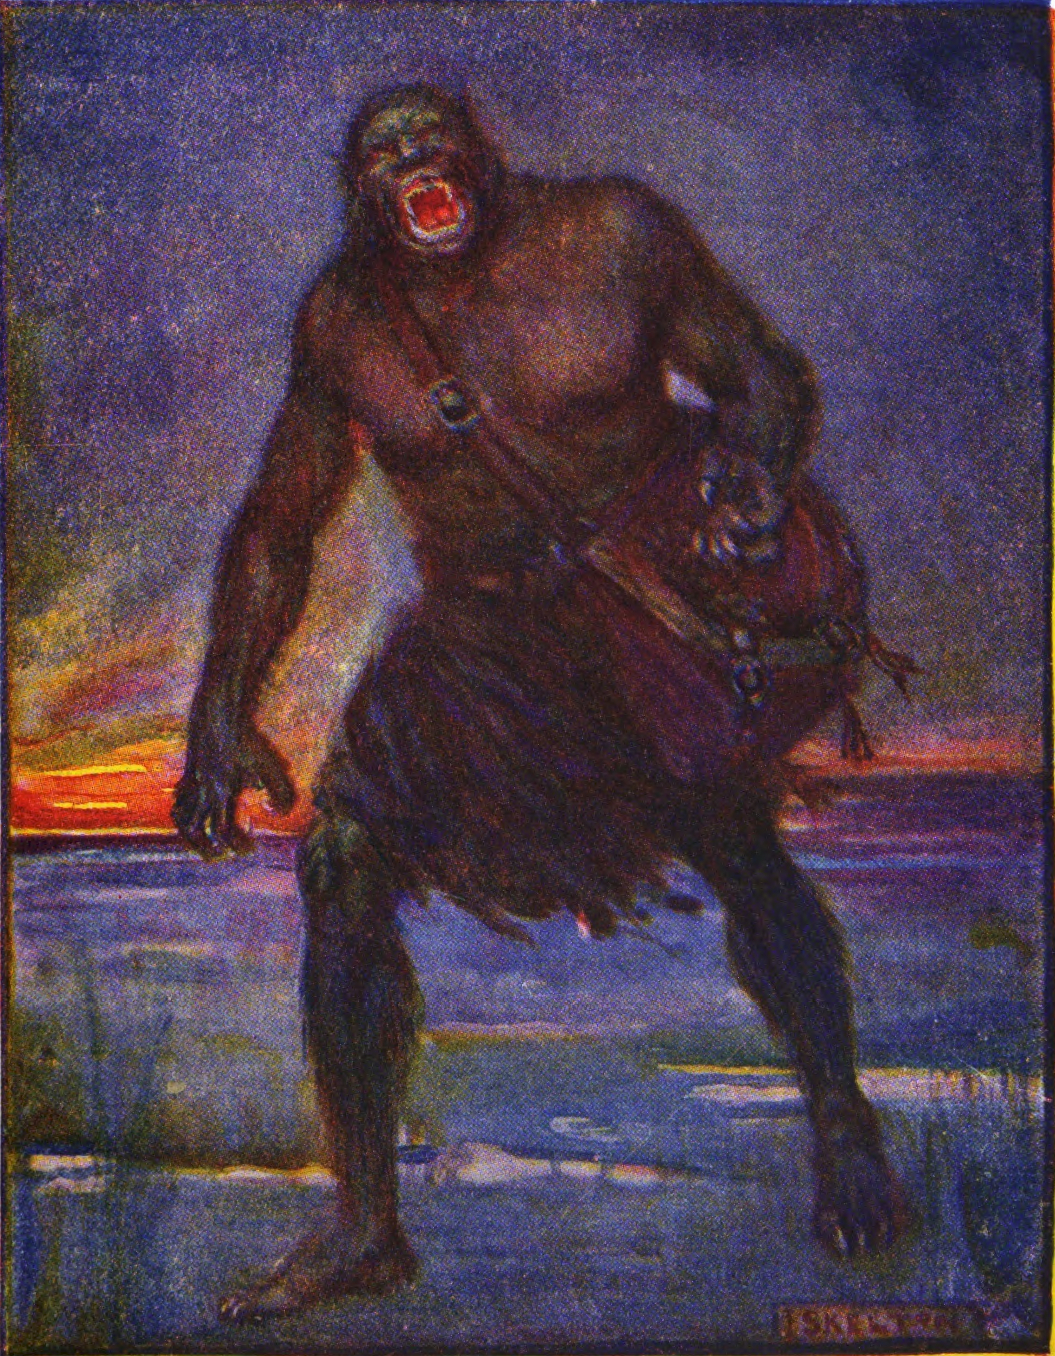 grendel in american society  an illustration of grendel by j r skelton from stories of beowulf grendel is described as